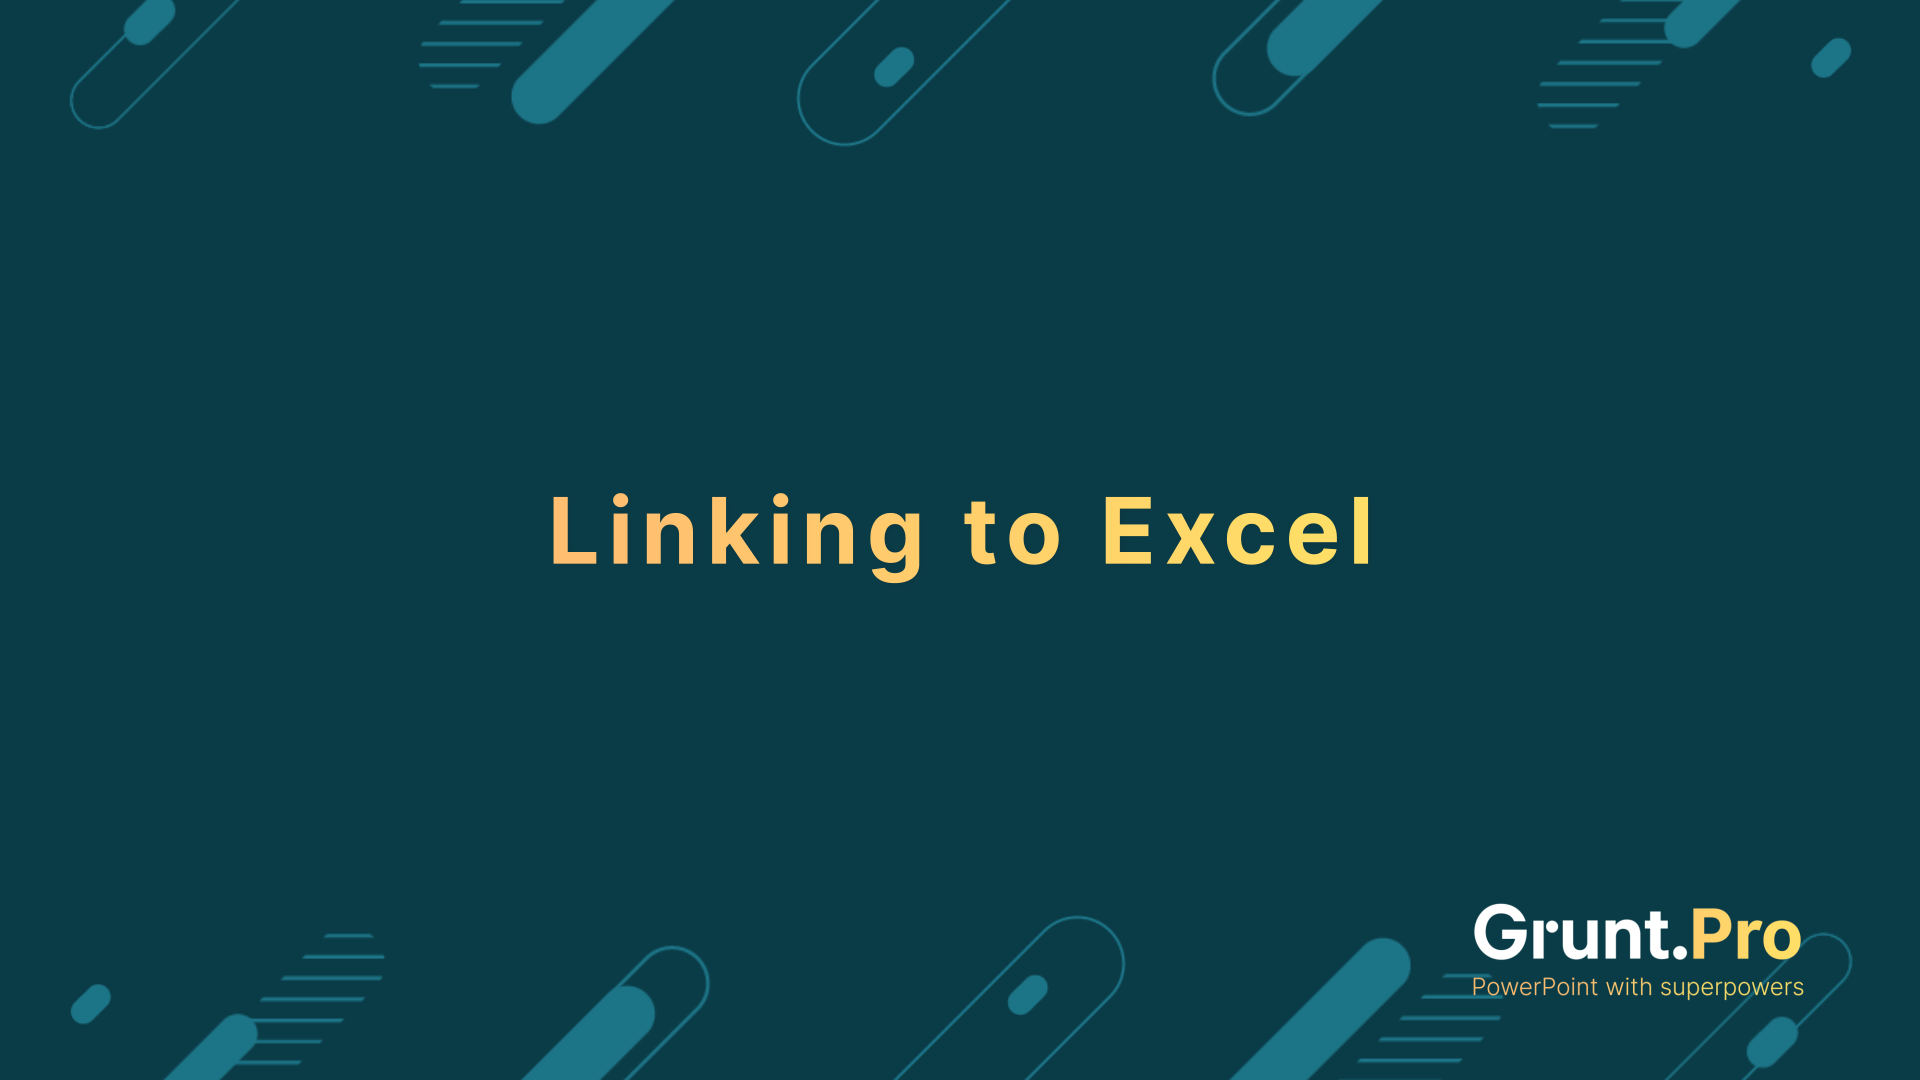 Linking to Excel